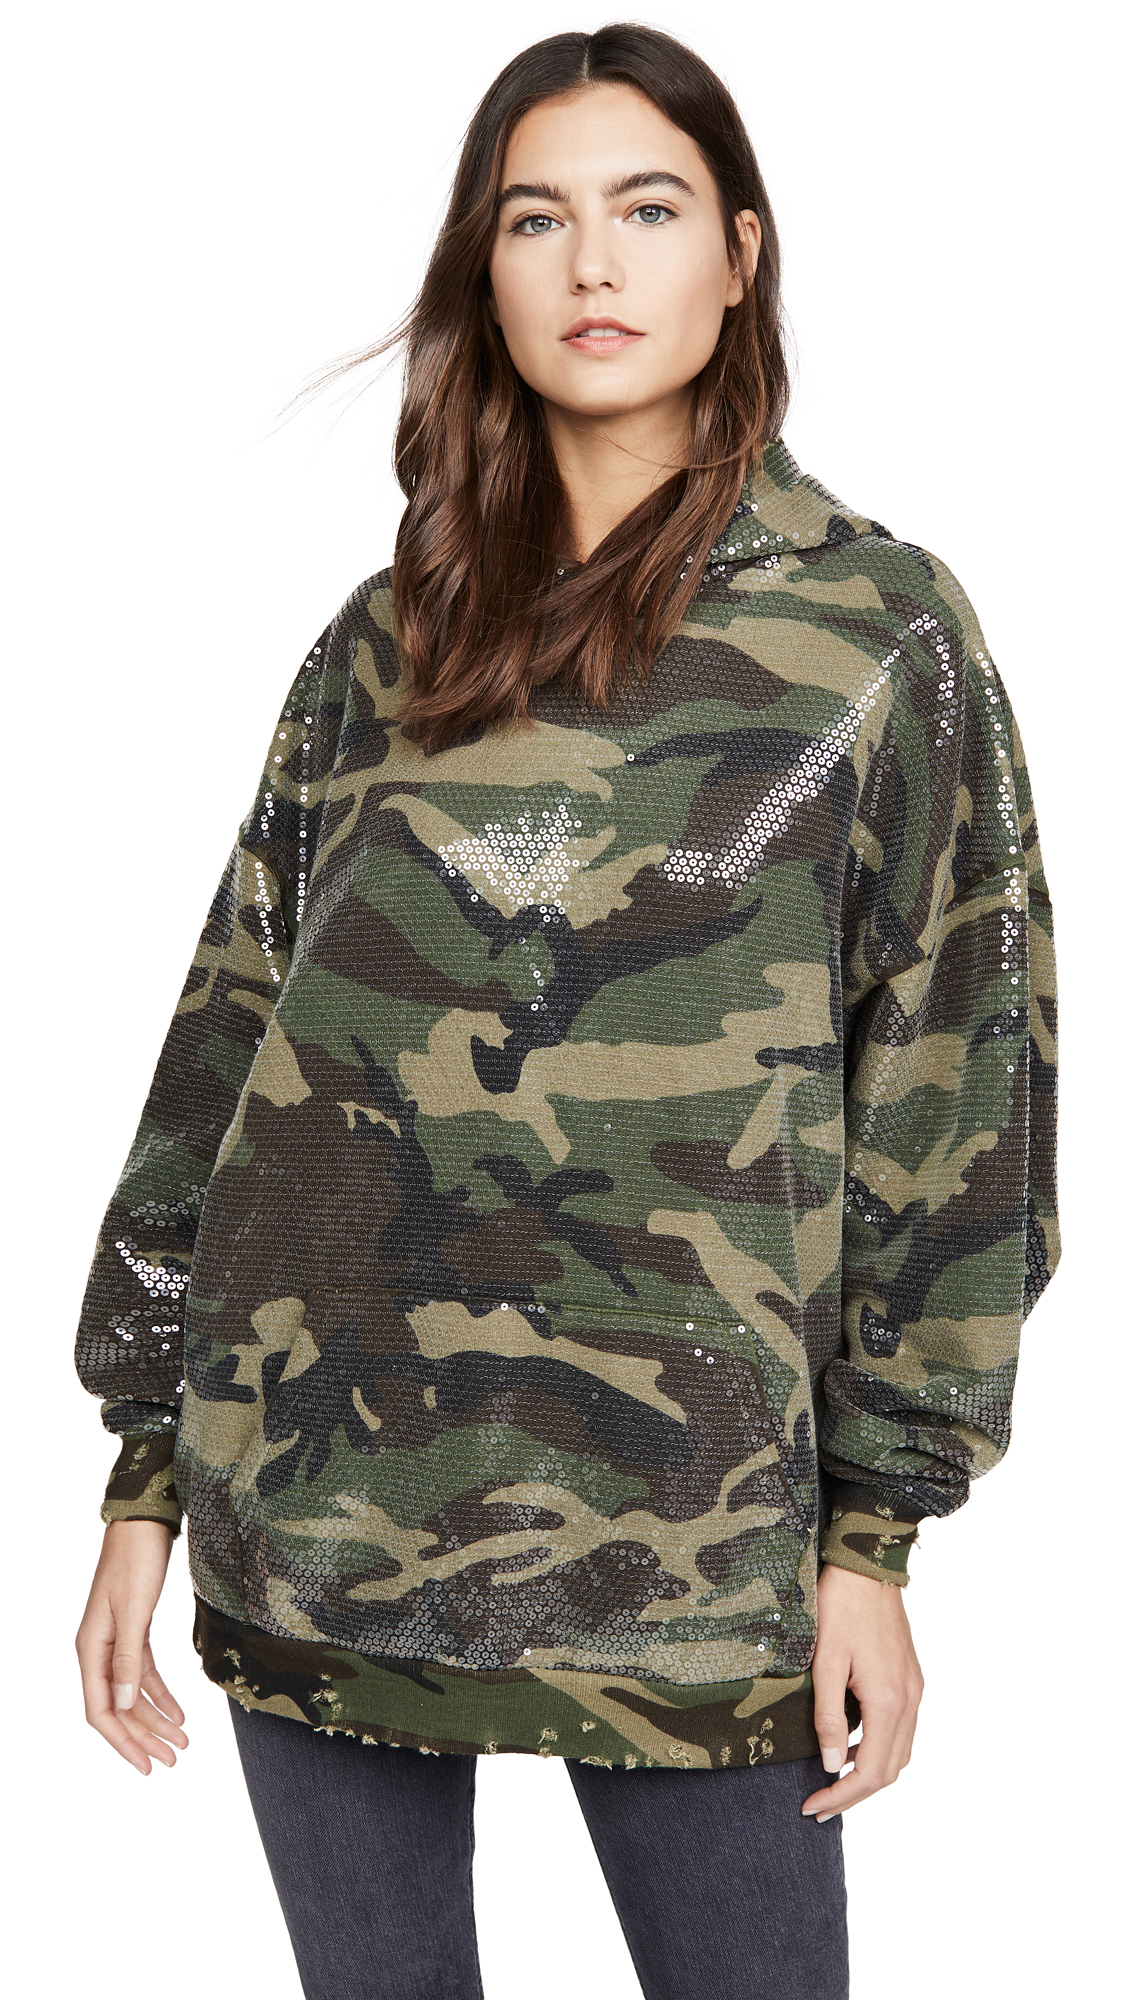 R13 Camo Sequined Hoodie - 30% Off Sale